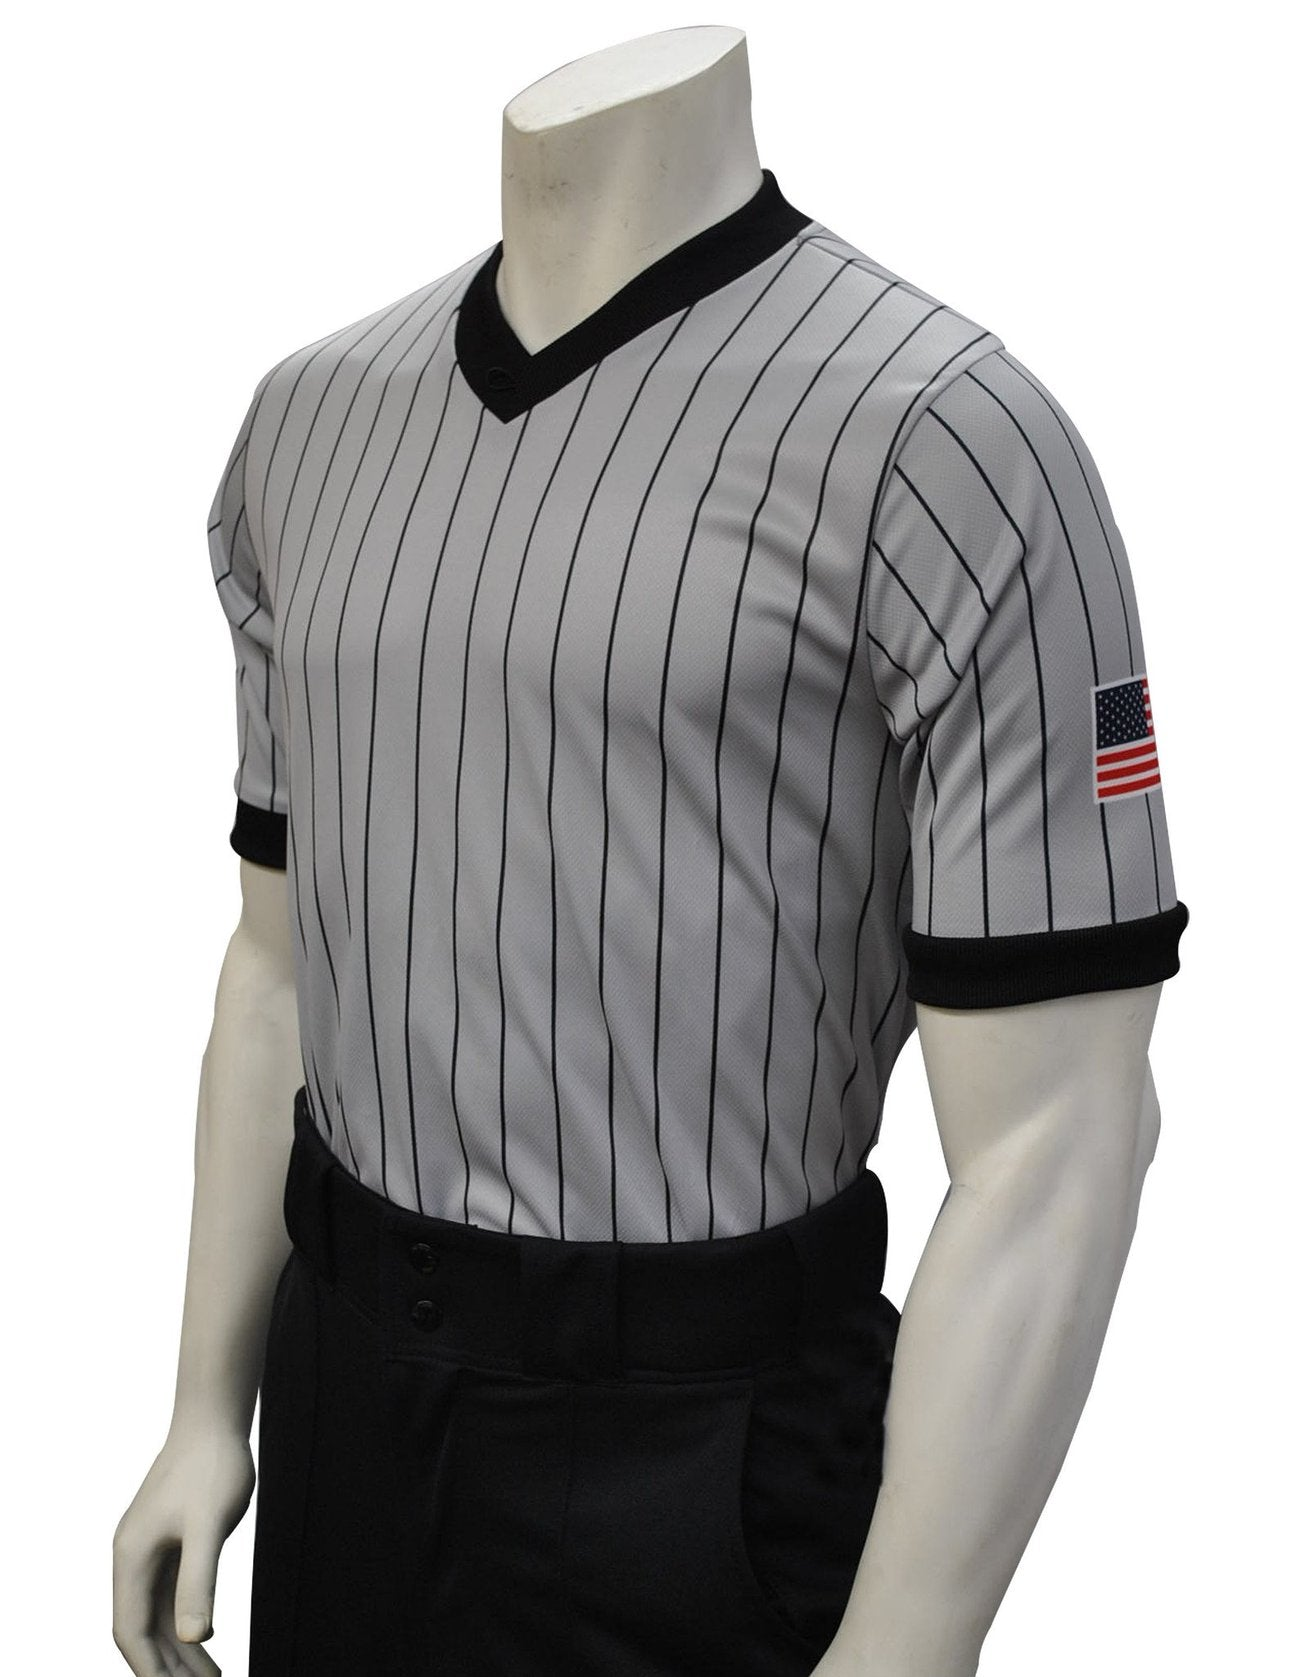 "USA205-607 - Smitty ""Made in USA"" - ""BODY FLEX"" Dye Sub Grey Basketball V-Neck - With USA Flag"